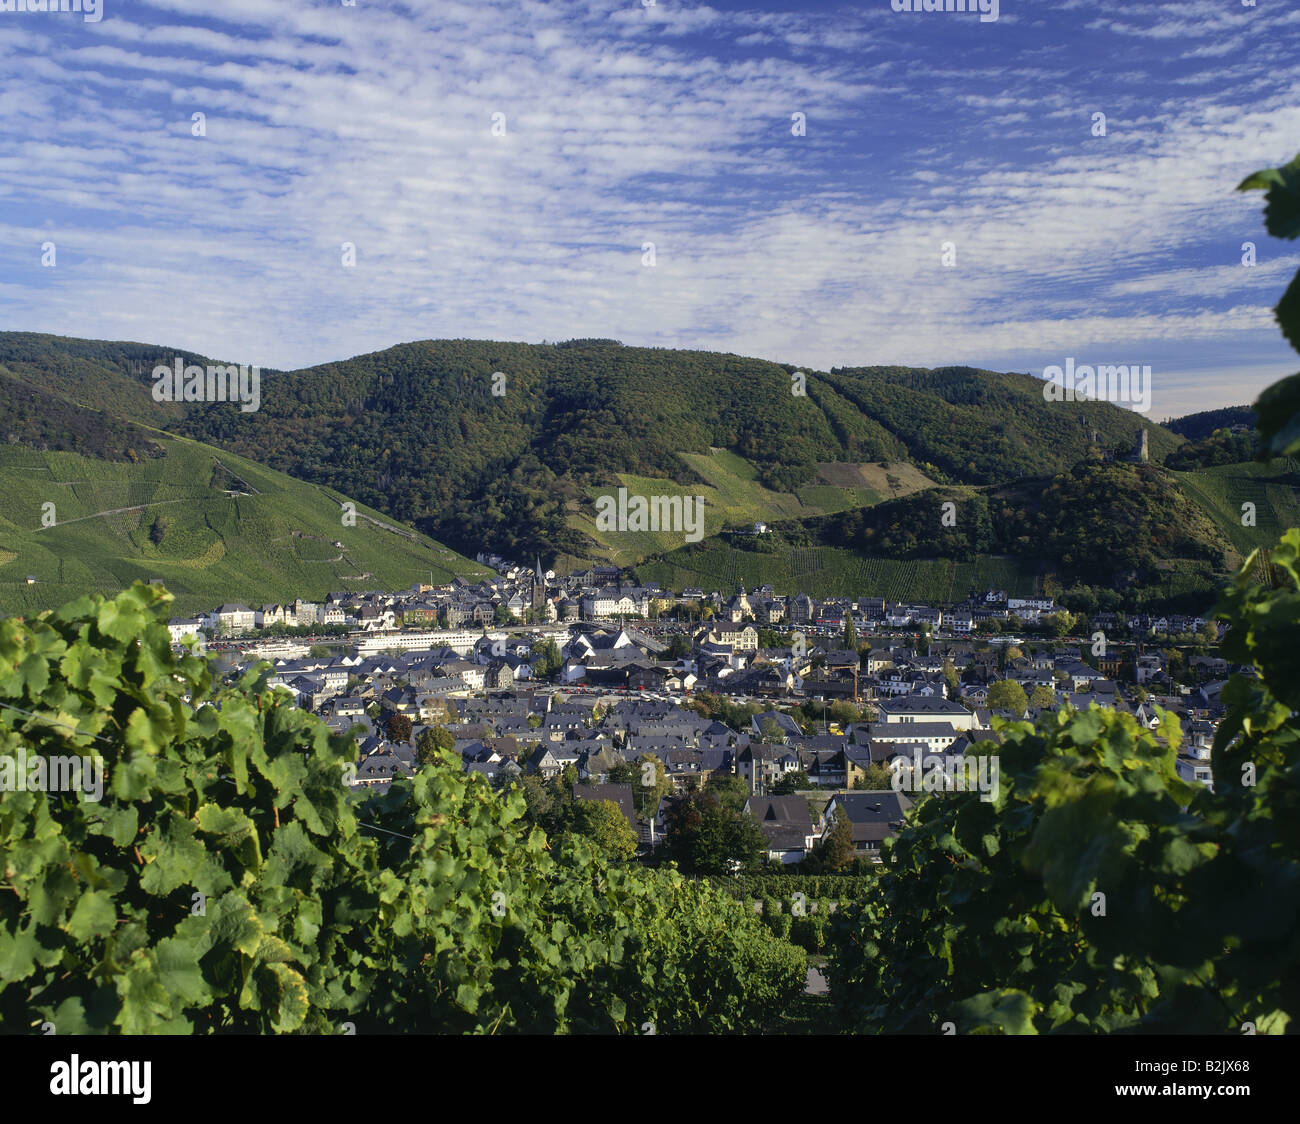 geography / travel, Germany, Rhineland-Palatinate, Bernkastel Kues, city views / cityscapes, Additional-Rights-Clearance - Stock Image